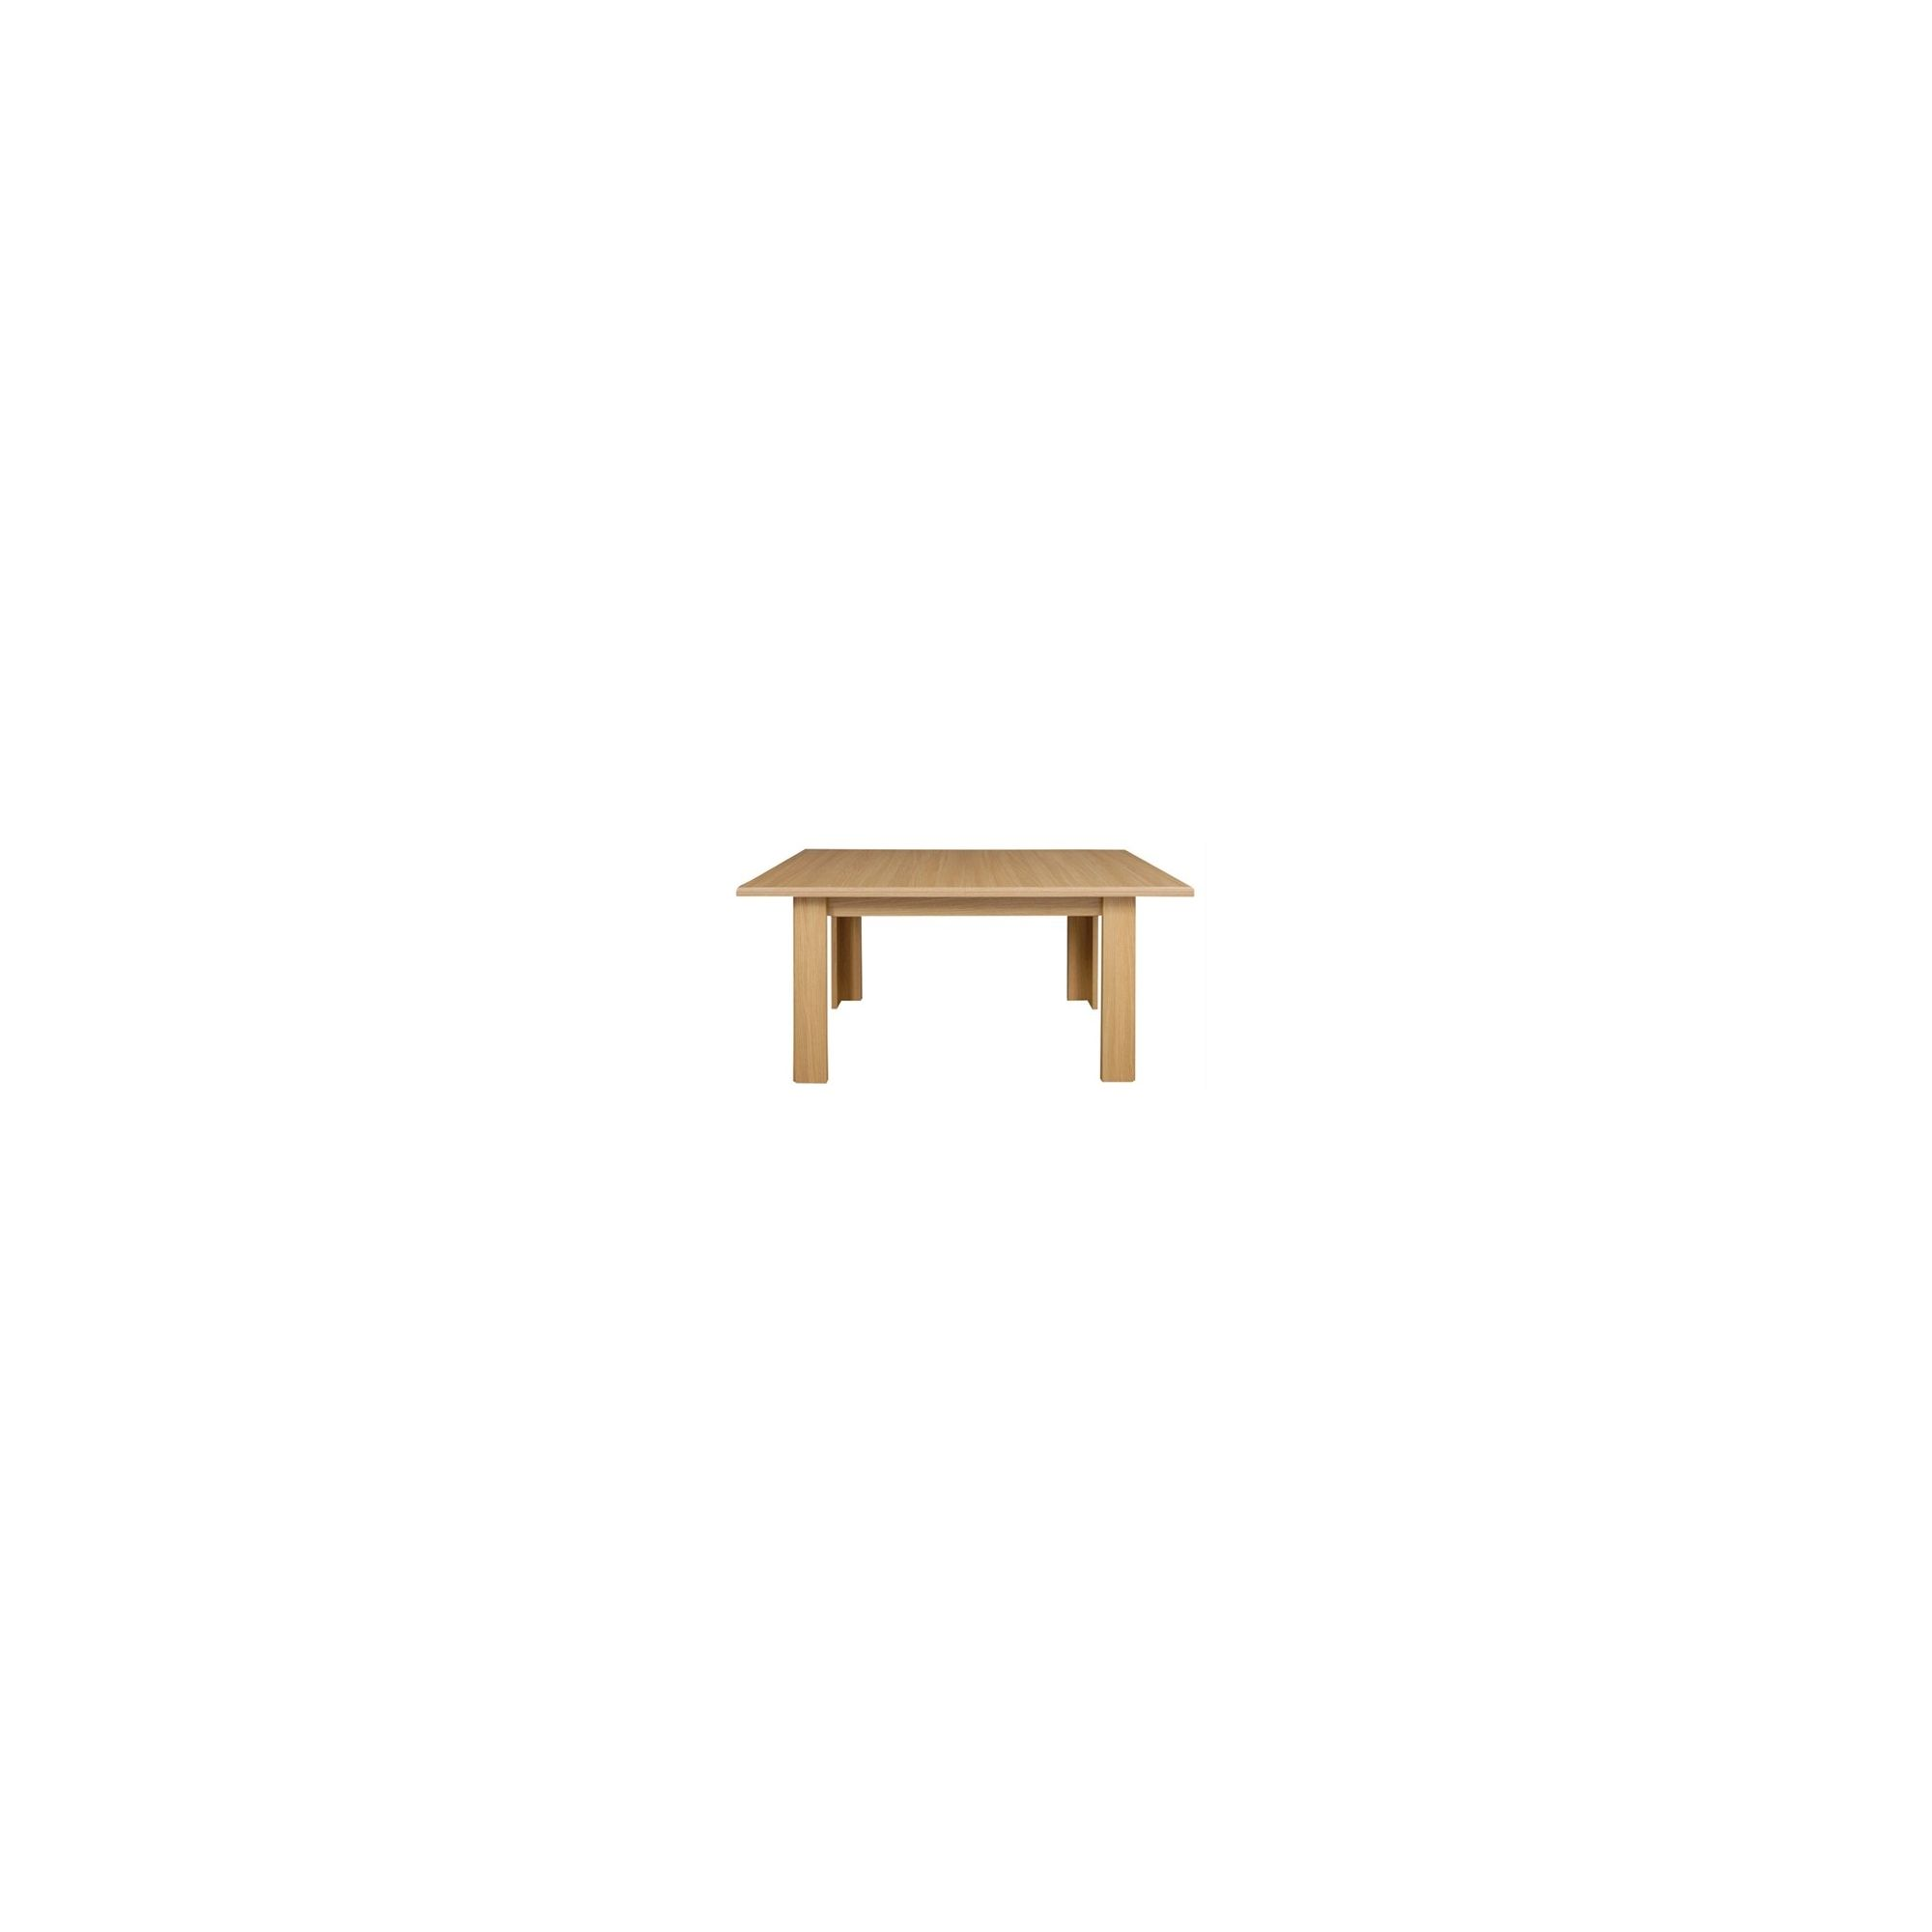 Other Caxton Sherwood 4 Leg Rectangular Extending Dining Table in Natural Oak - 170-214cm